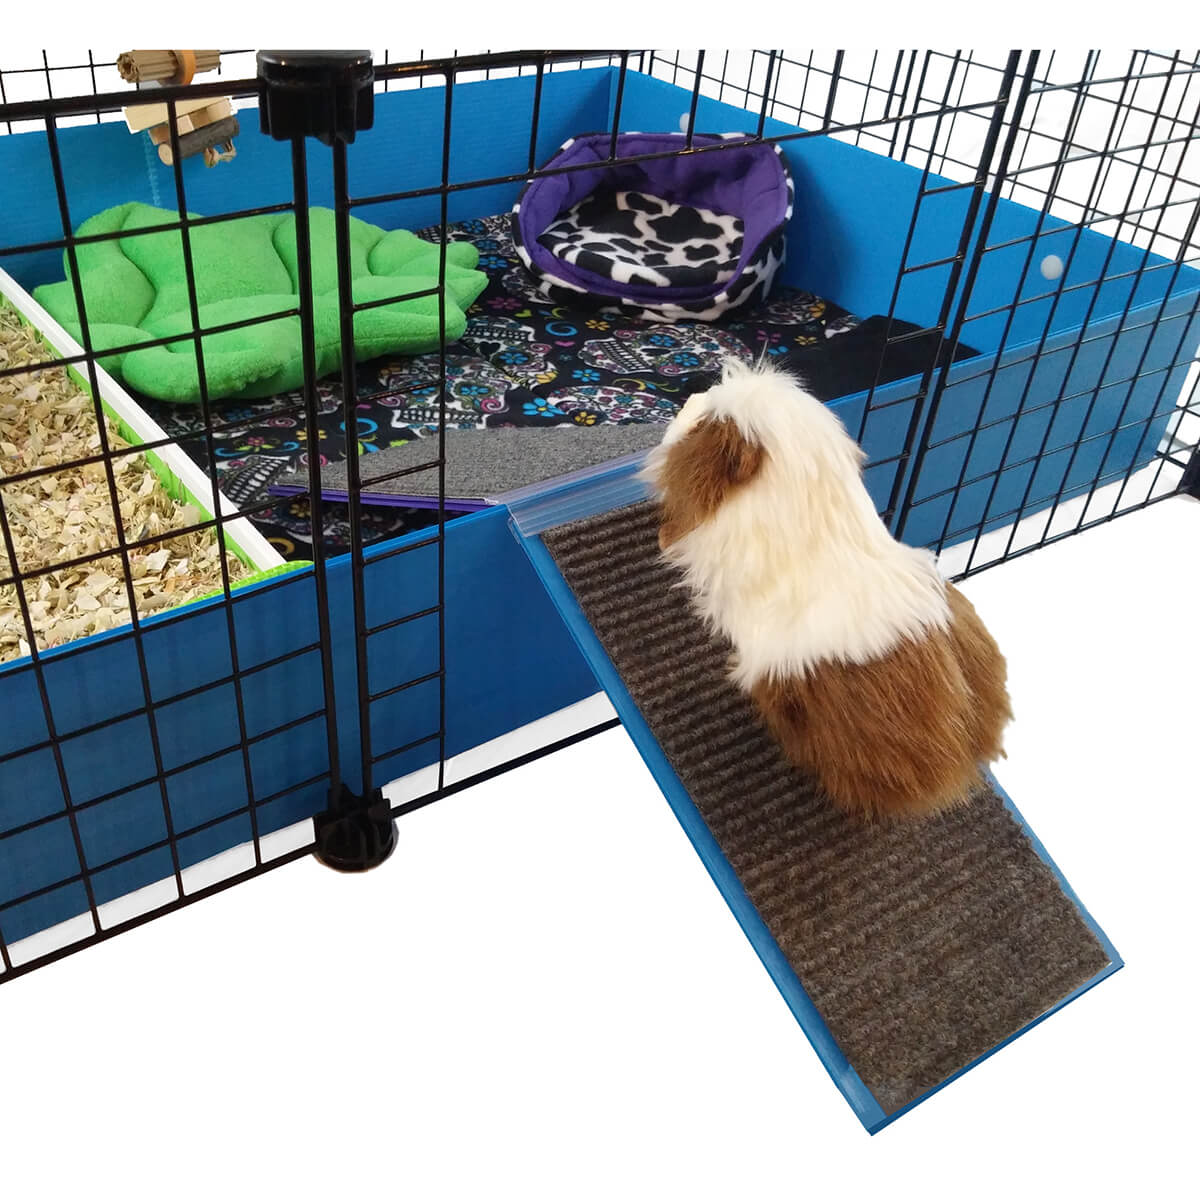 Piggyback ramp ramps c c cages for guinea pigs for Coroplast guinea pig cage for sale